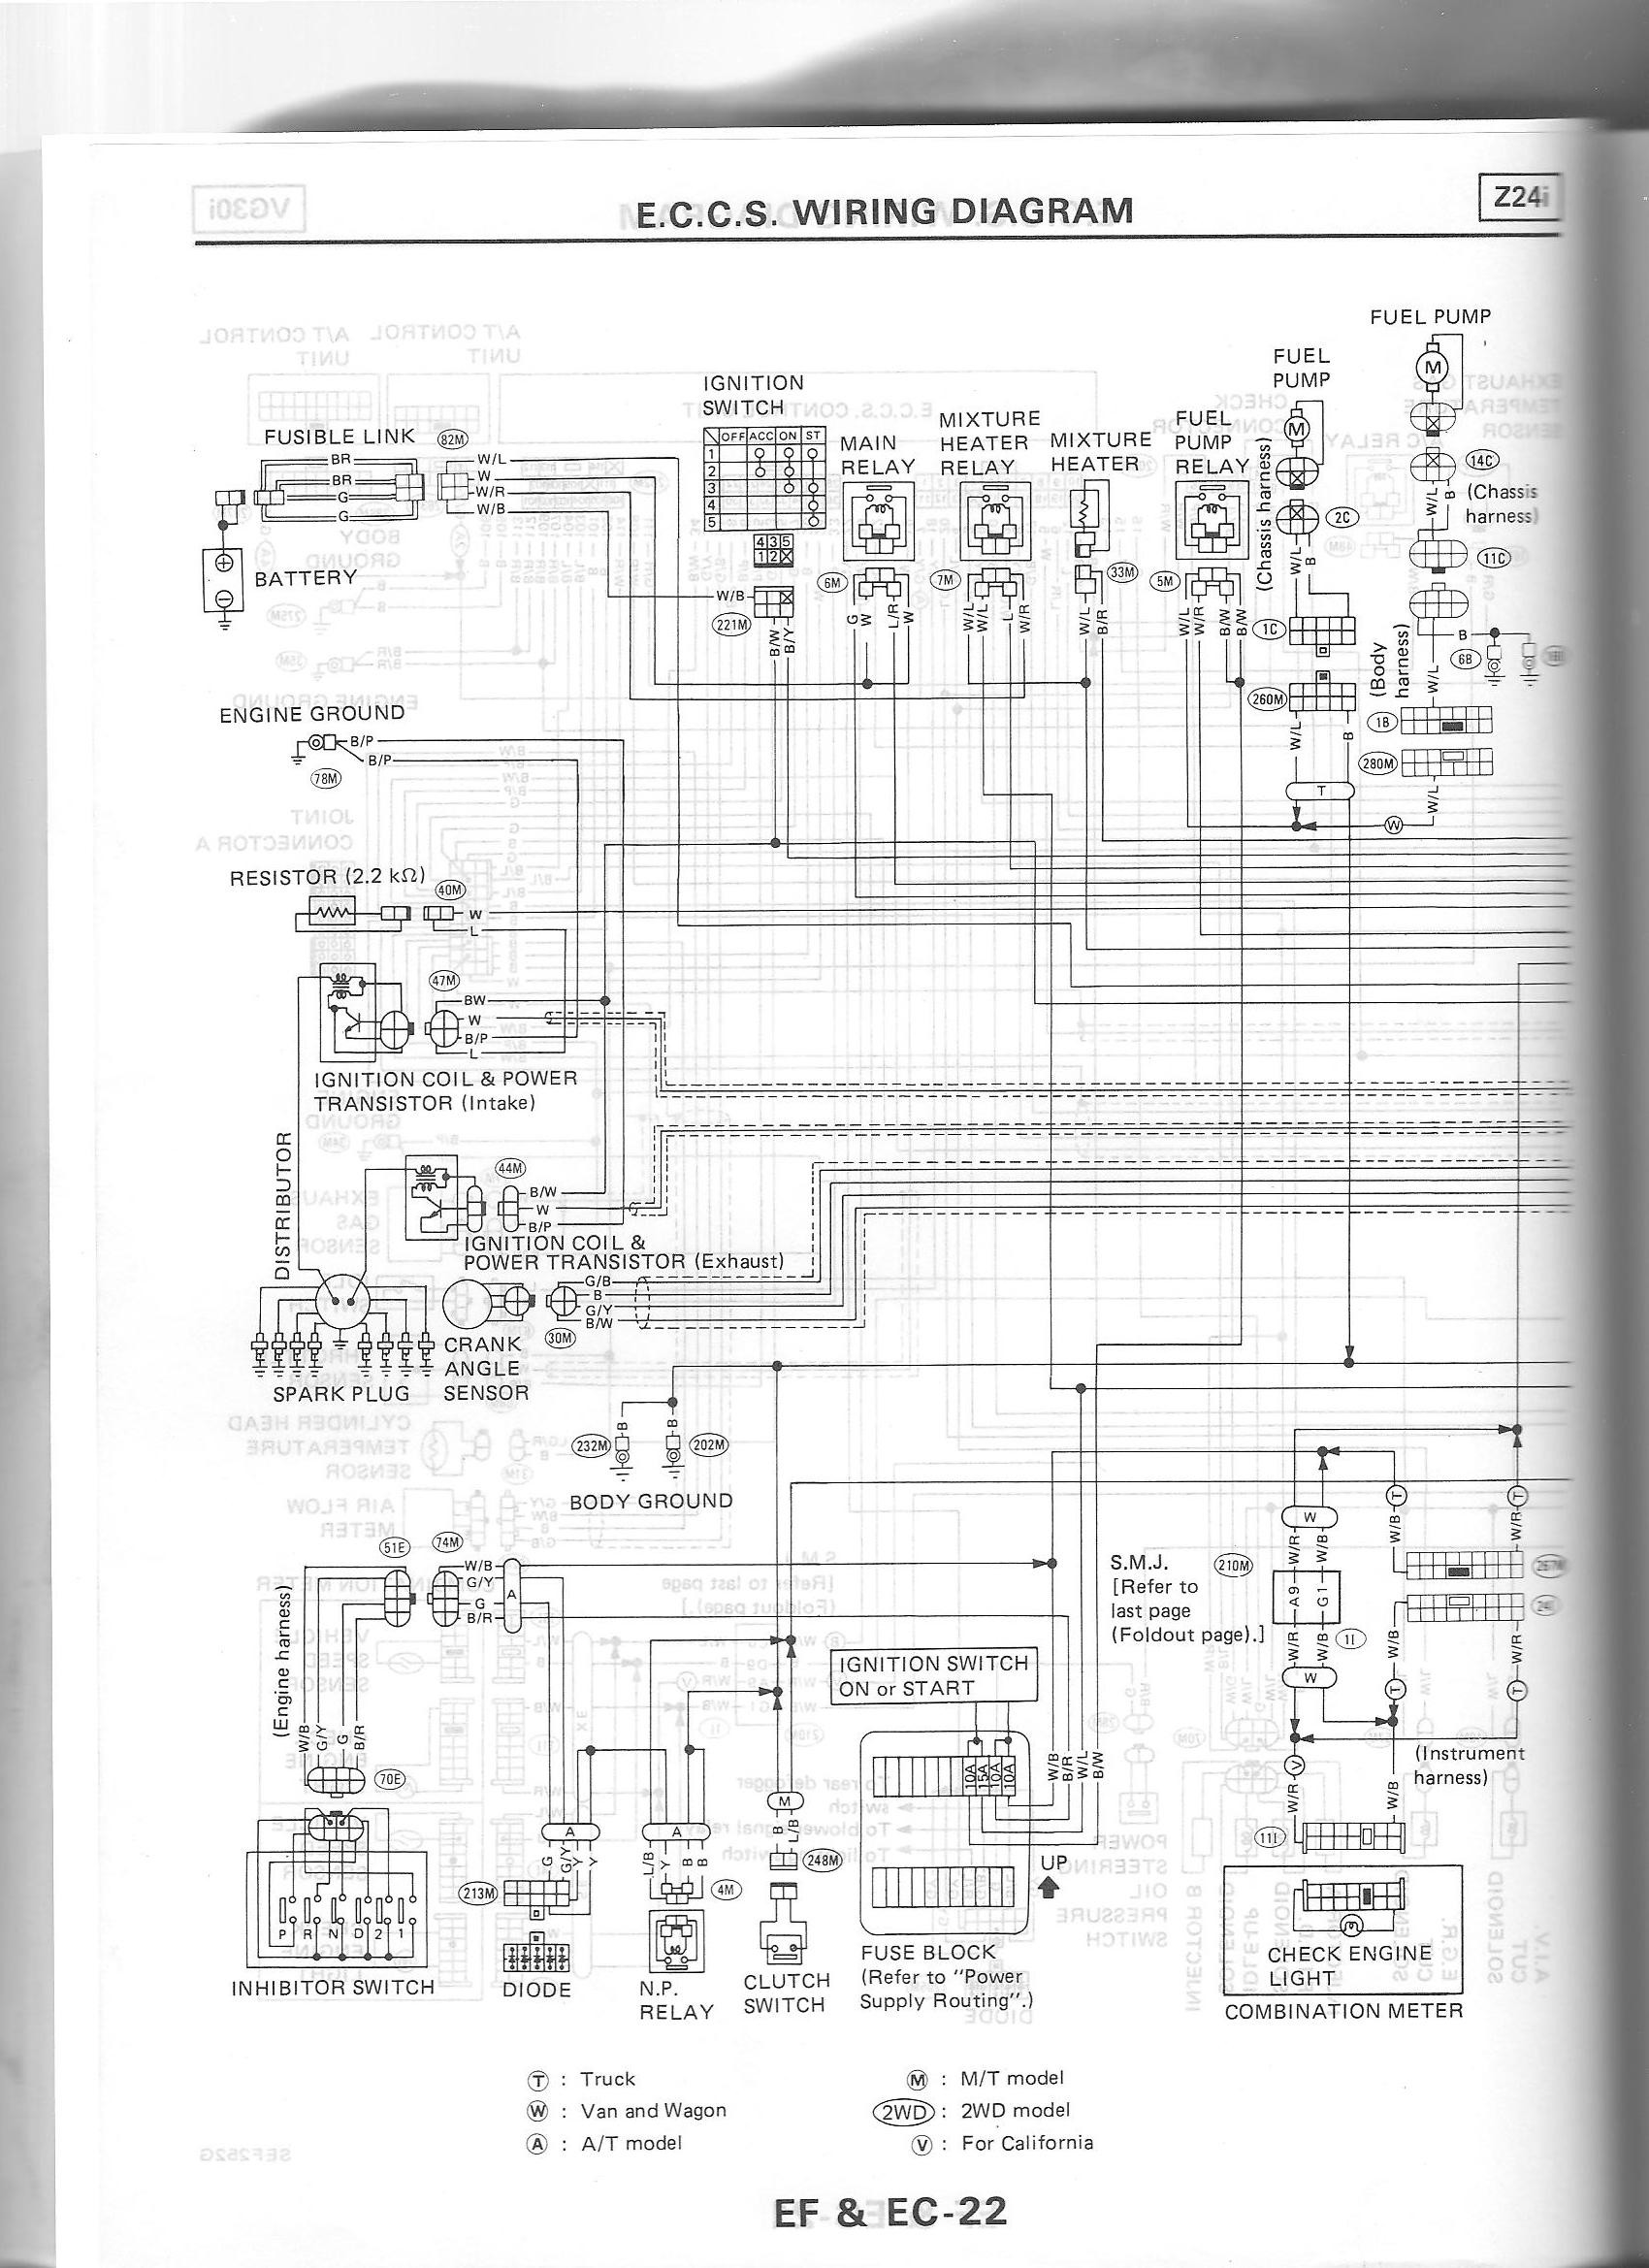 1985 trans am wiring diagram enthusiast wiring diagrams u2022 rh bwpartnersautos com